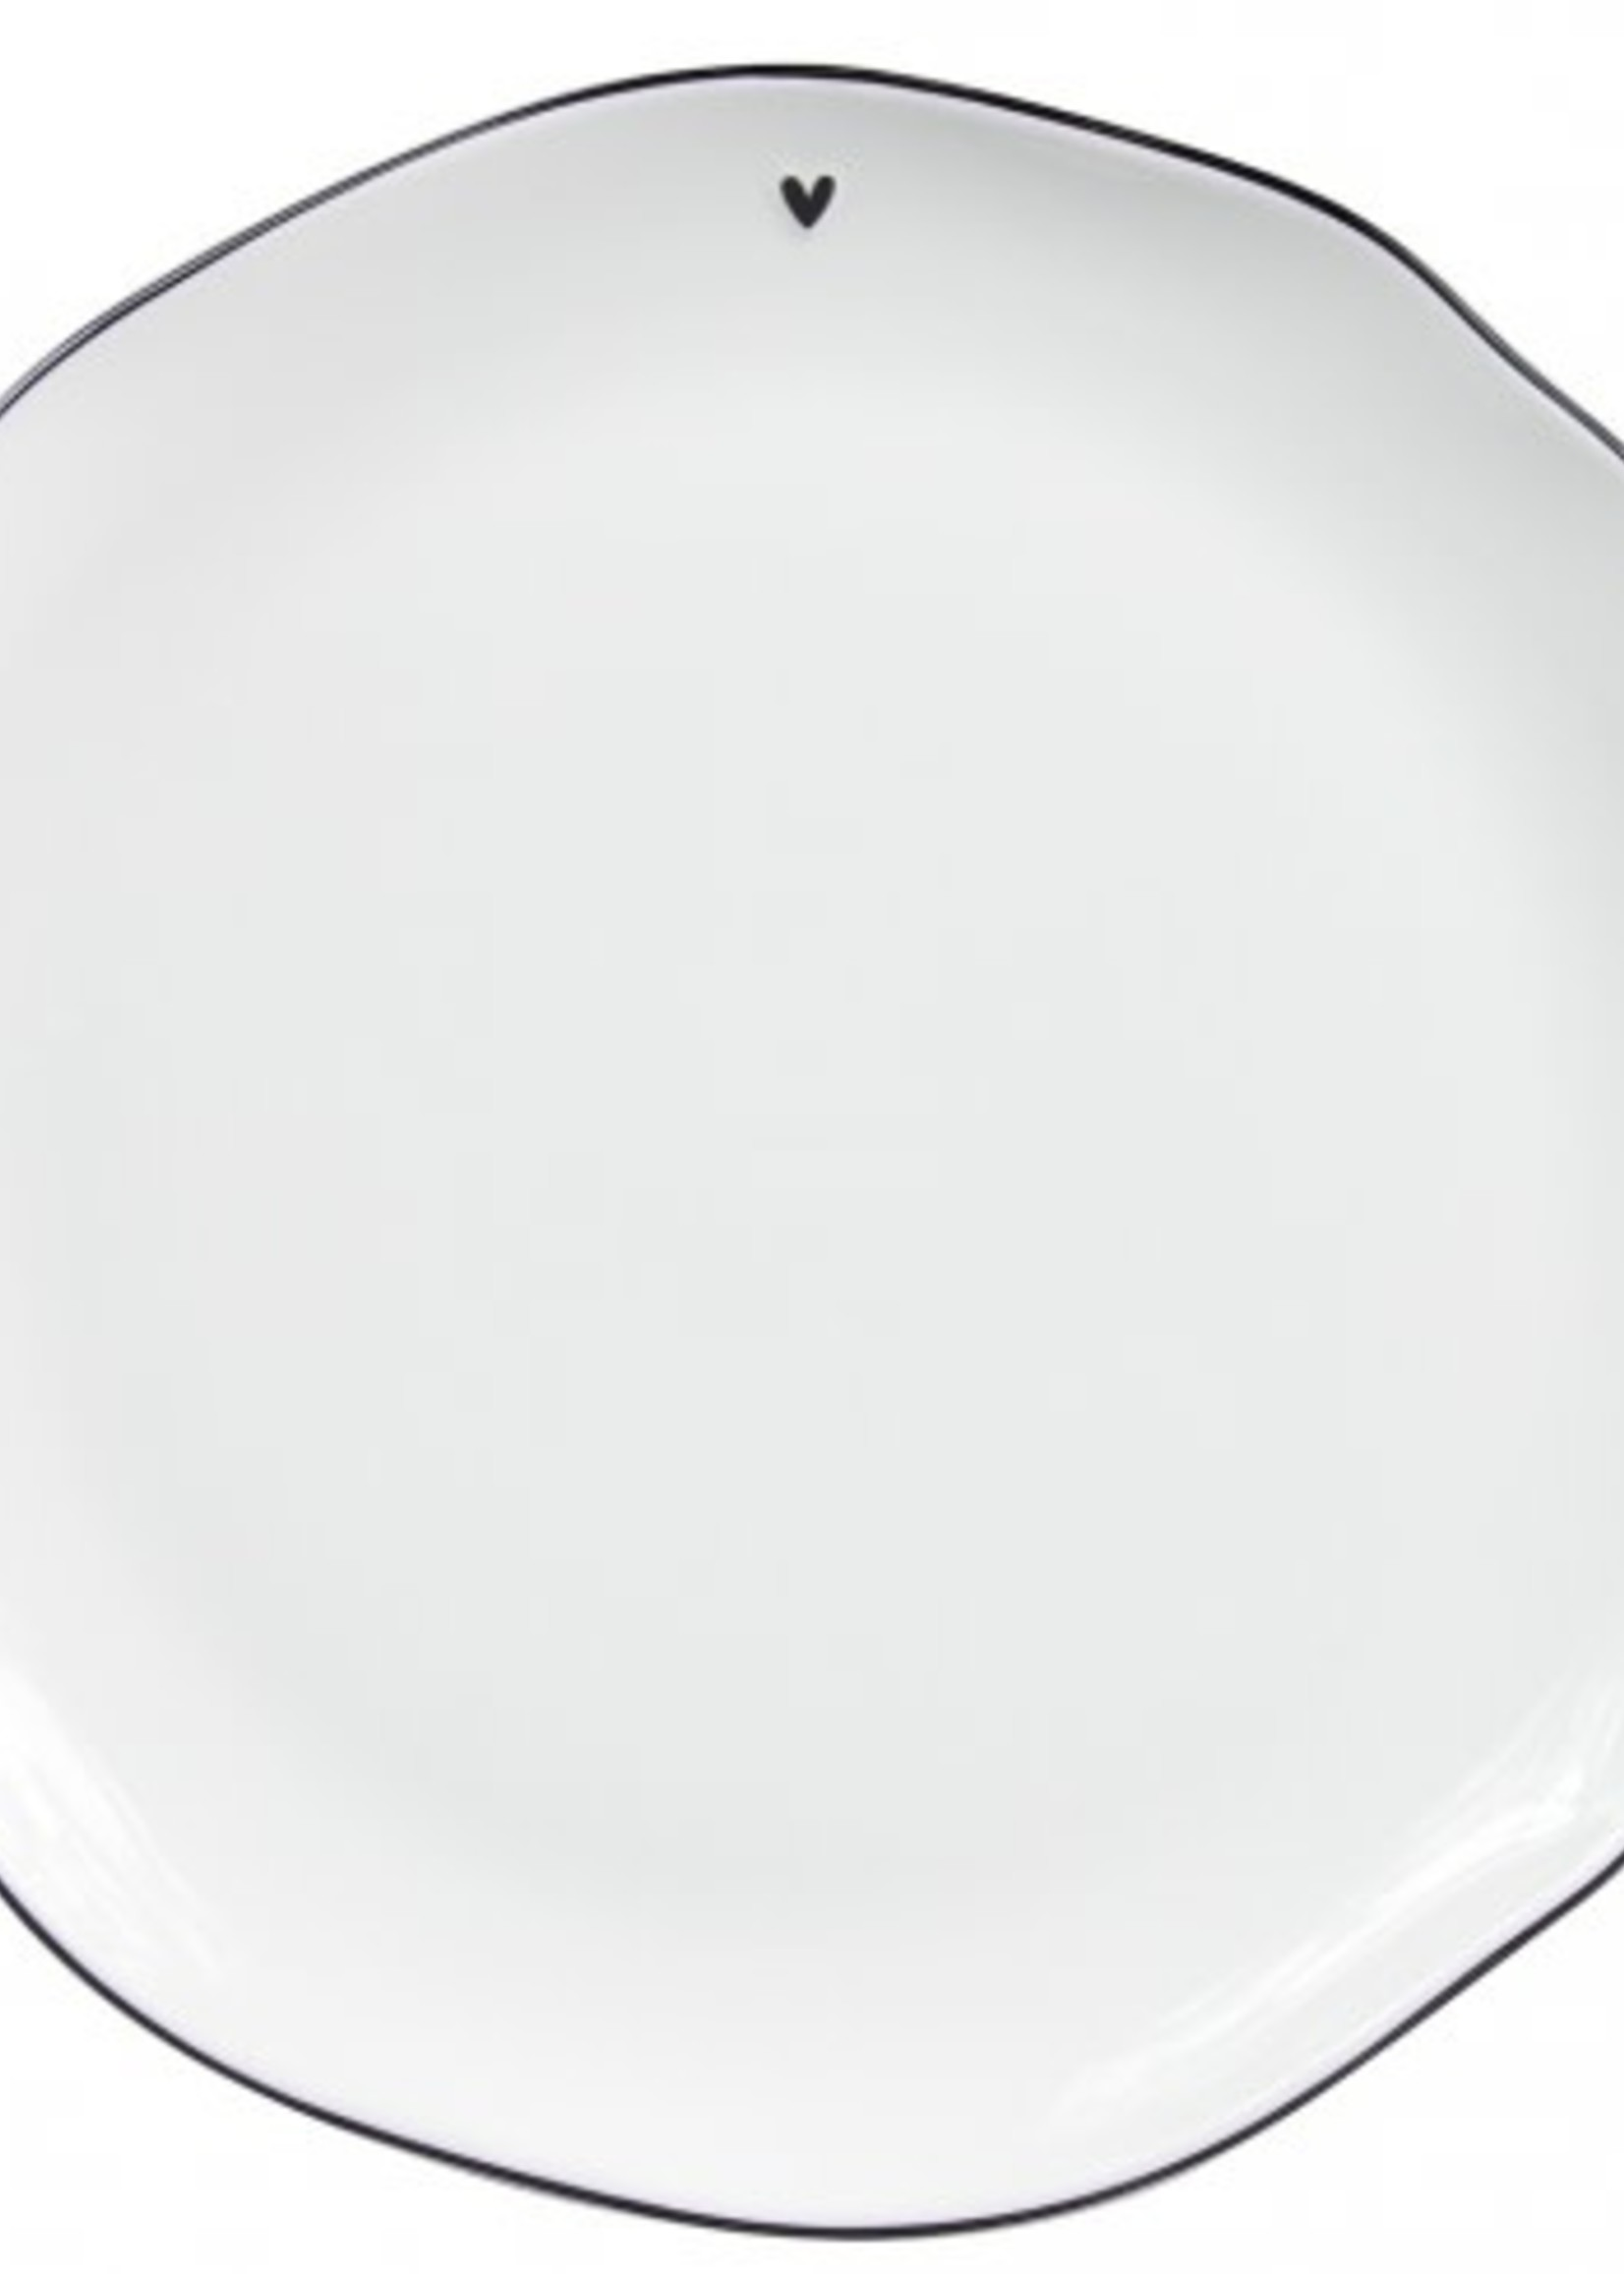 BASTION COLLECTIONS Dinner plate white/edge black 27cm